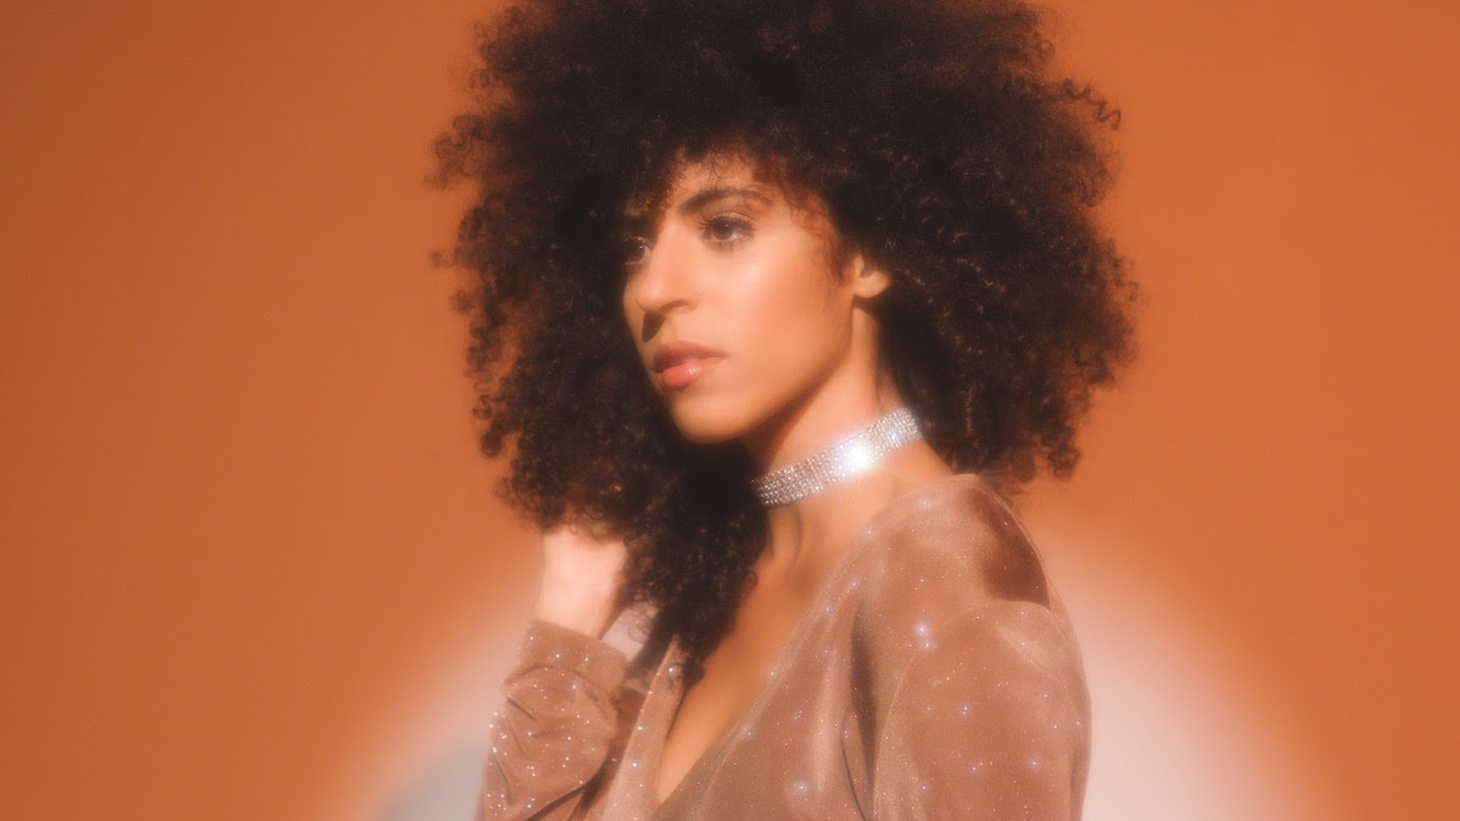 Los Angeles native Gavin Turek drops her latest EP tomorrow, just one day after her live performance on MBE.